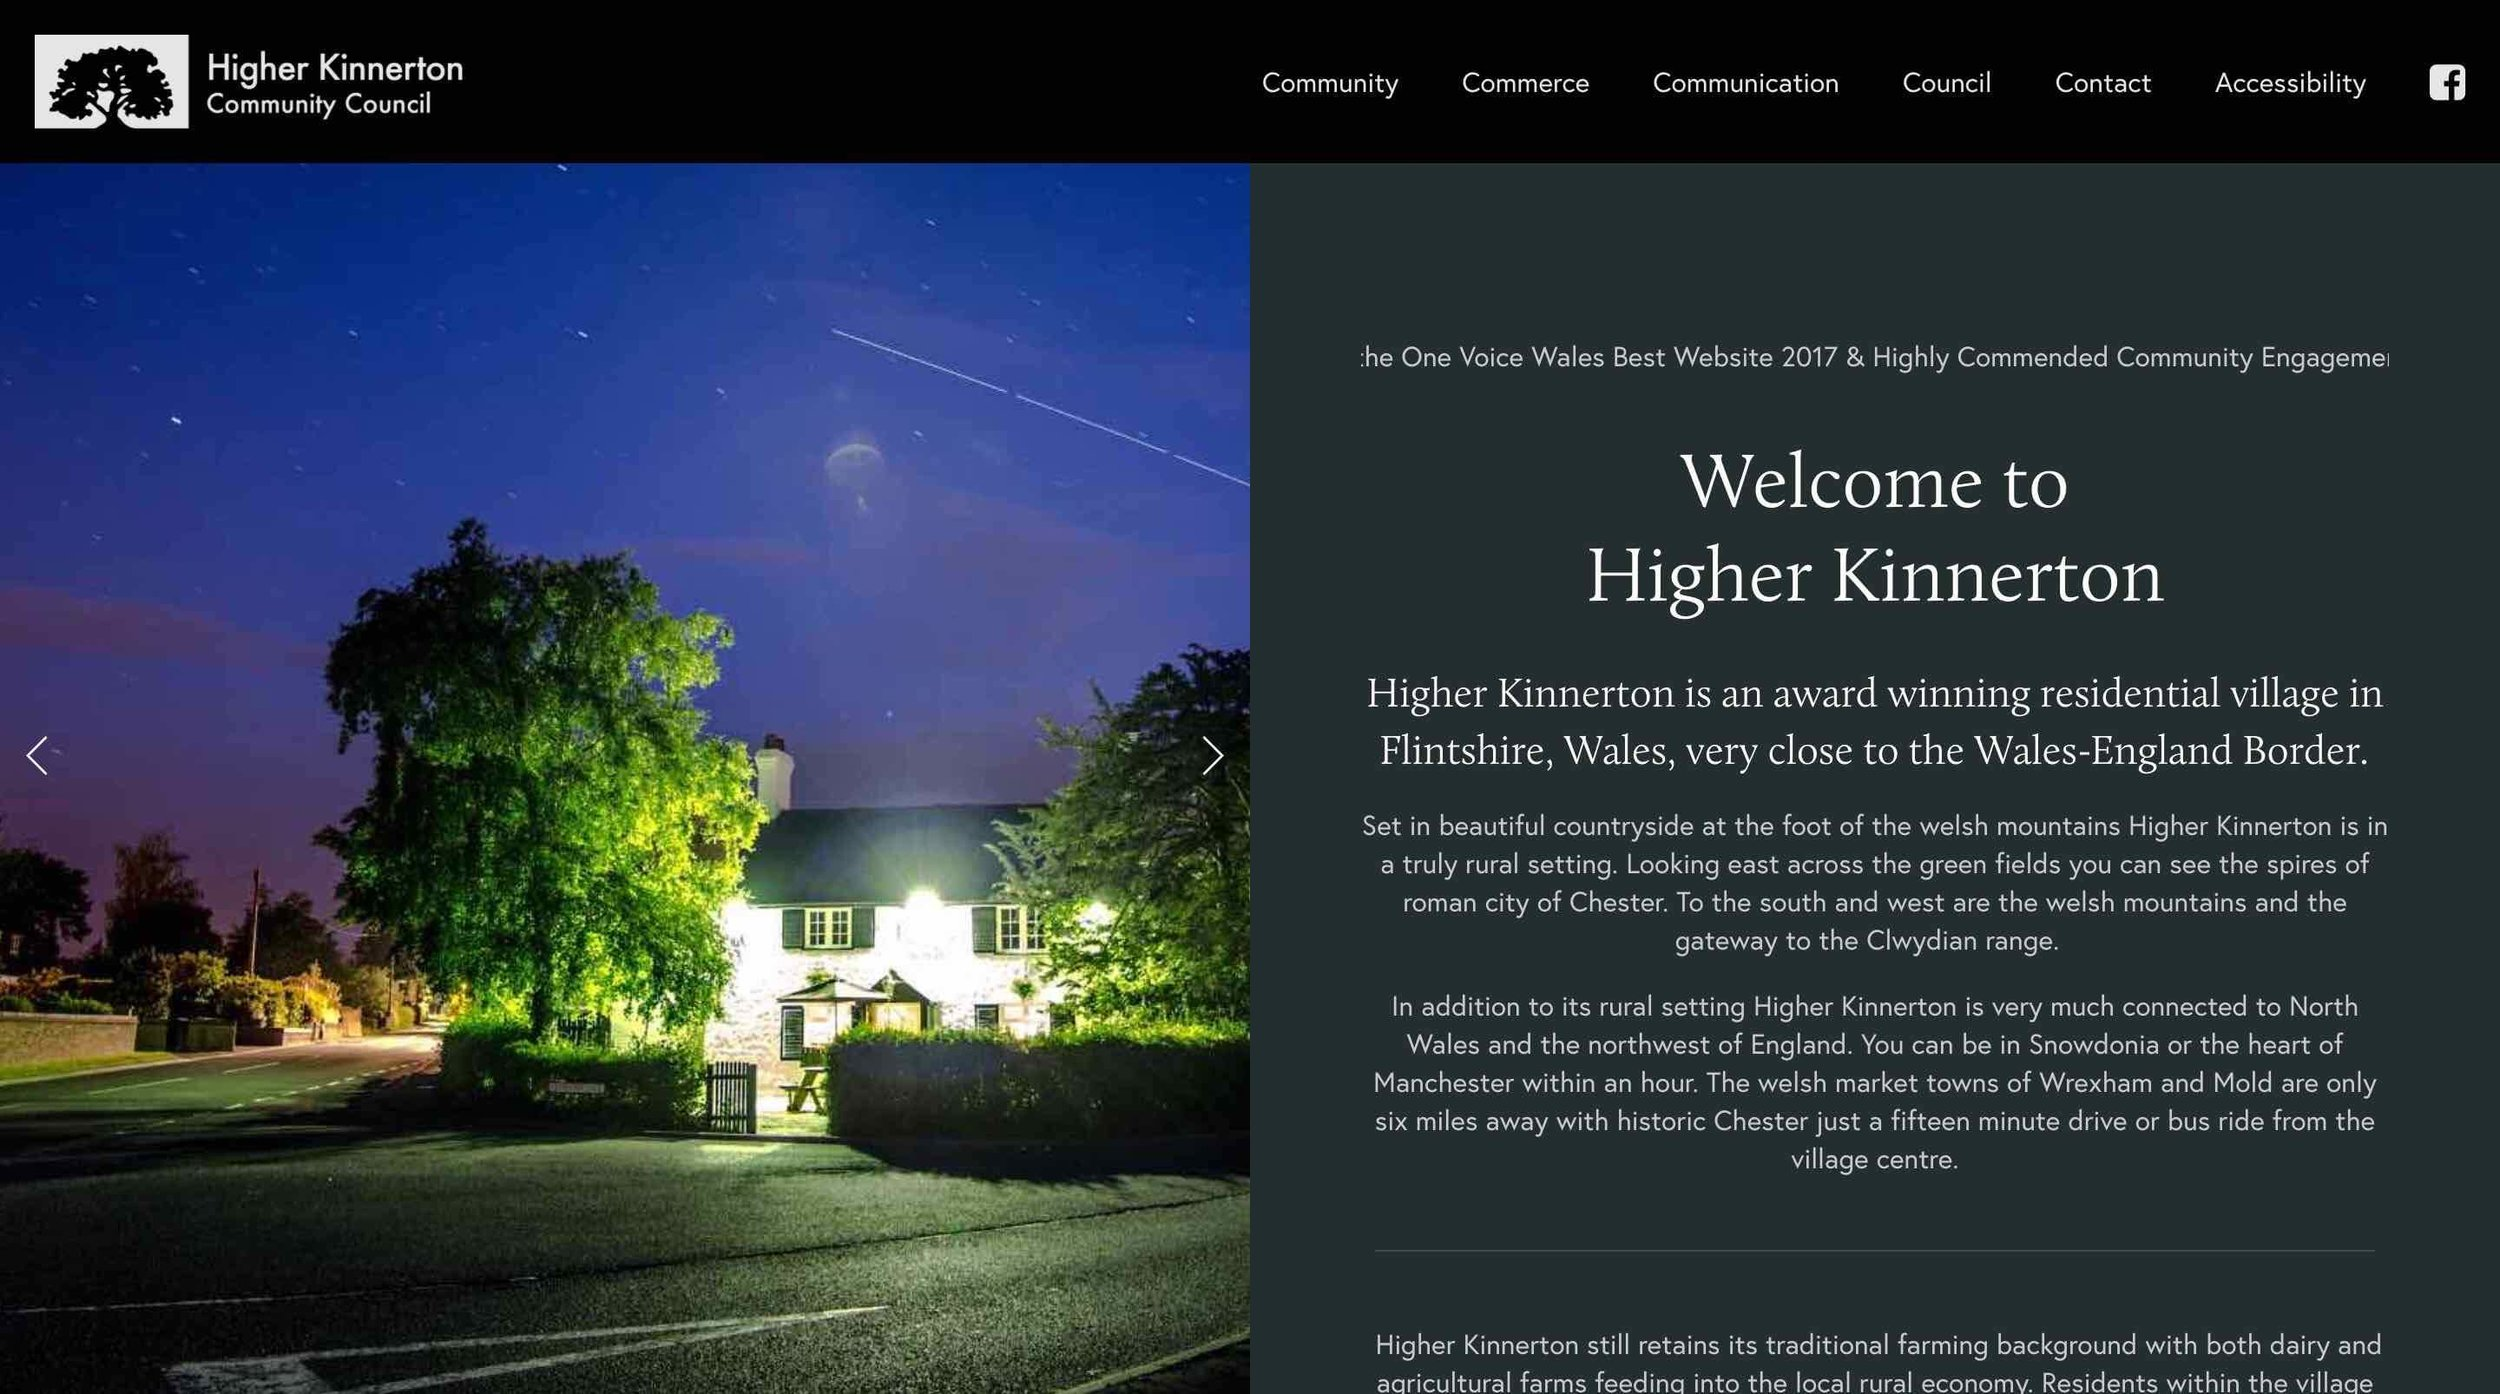 Higher Kinnerton Community Council: Home Page